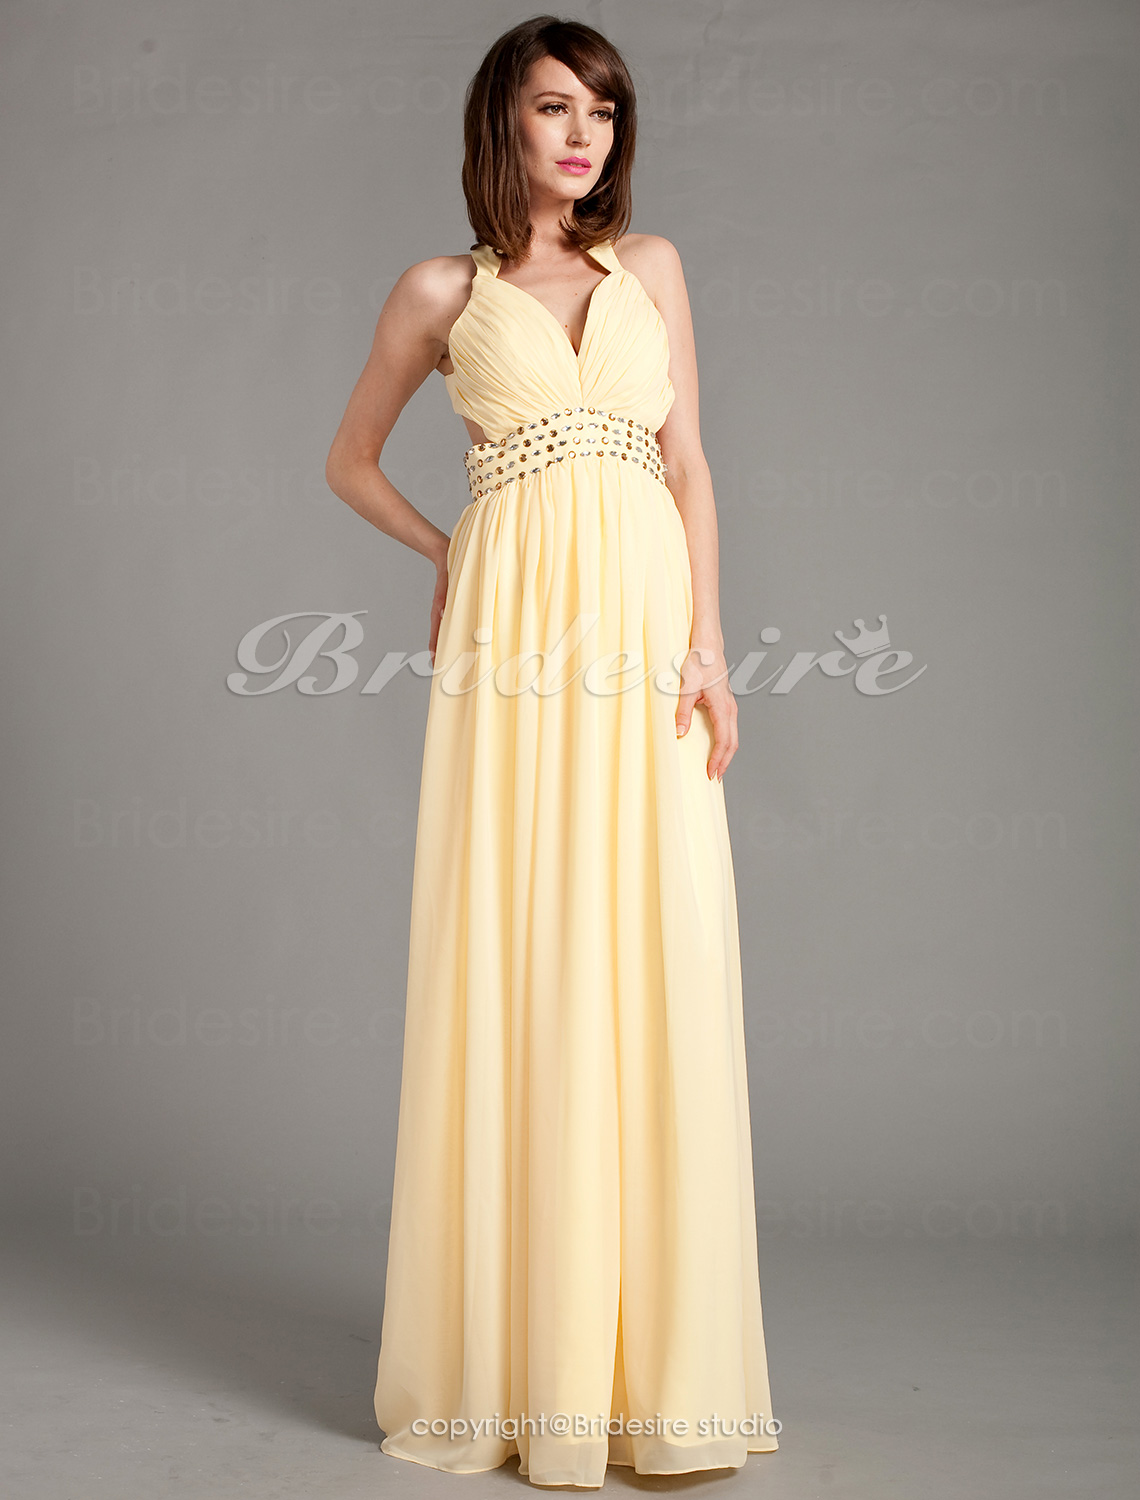 Sheath/ Column Chiffon V-neck Floor-length Straps Evening Dress